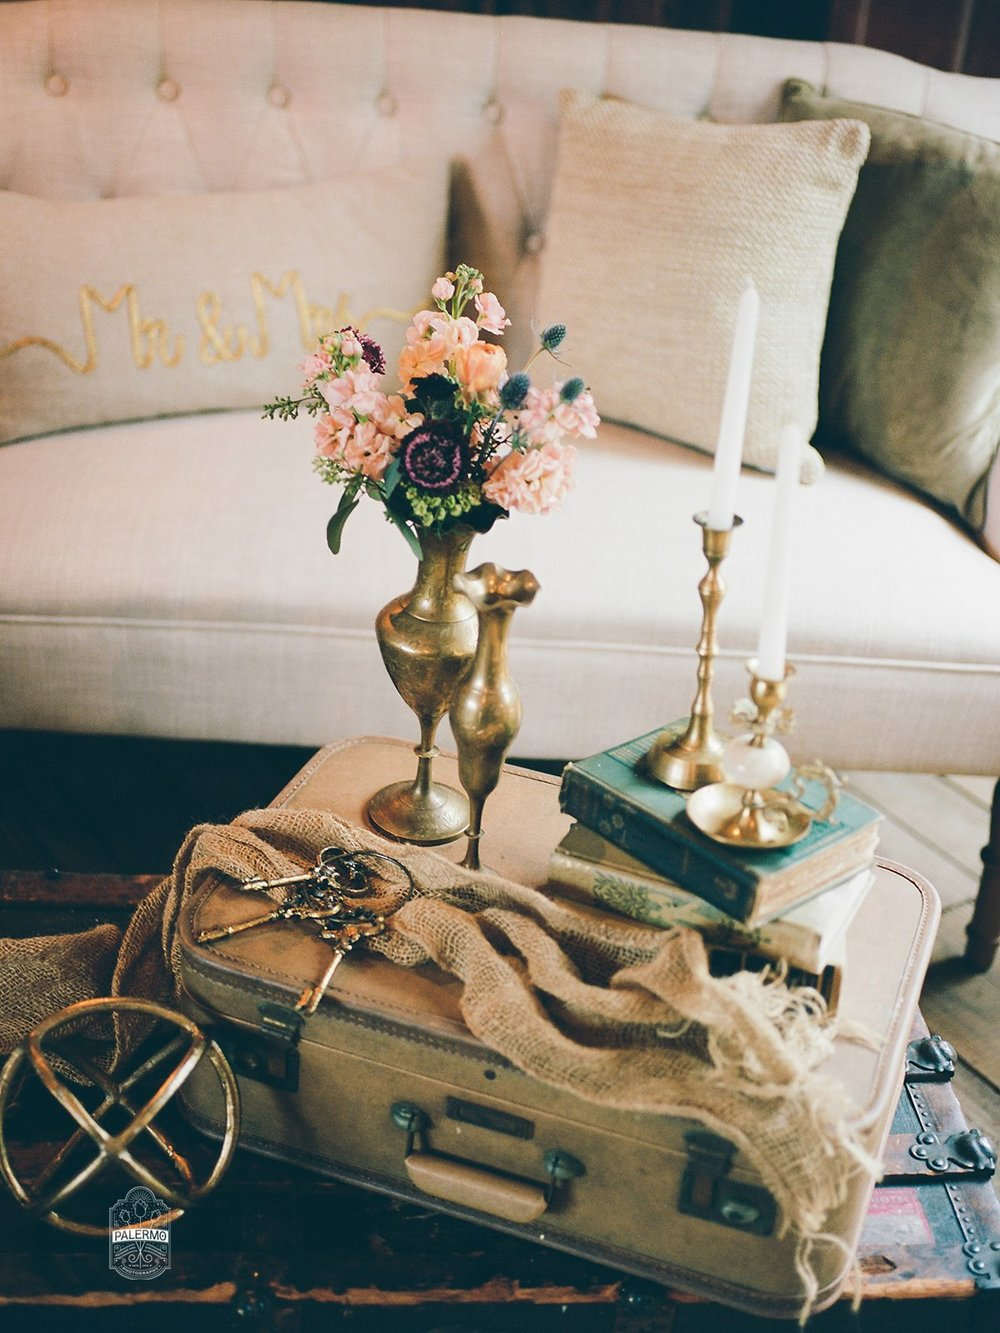 Rustic vintage wedding decor for rustic fall barn wedding in Pittsburgh, PA planned by Exhale Events. Find more wedding inspiration at exhale-events.com!